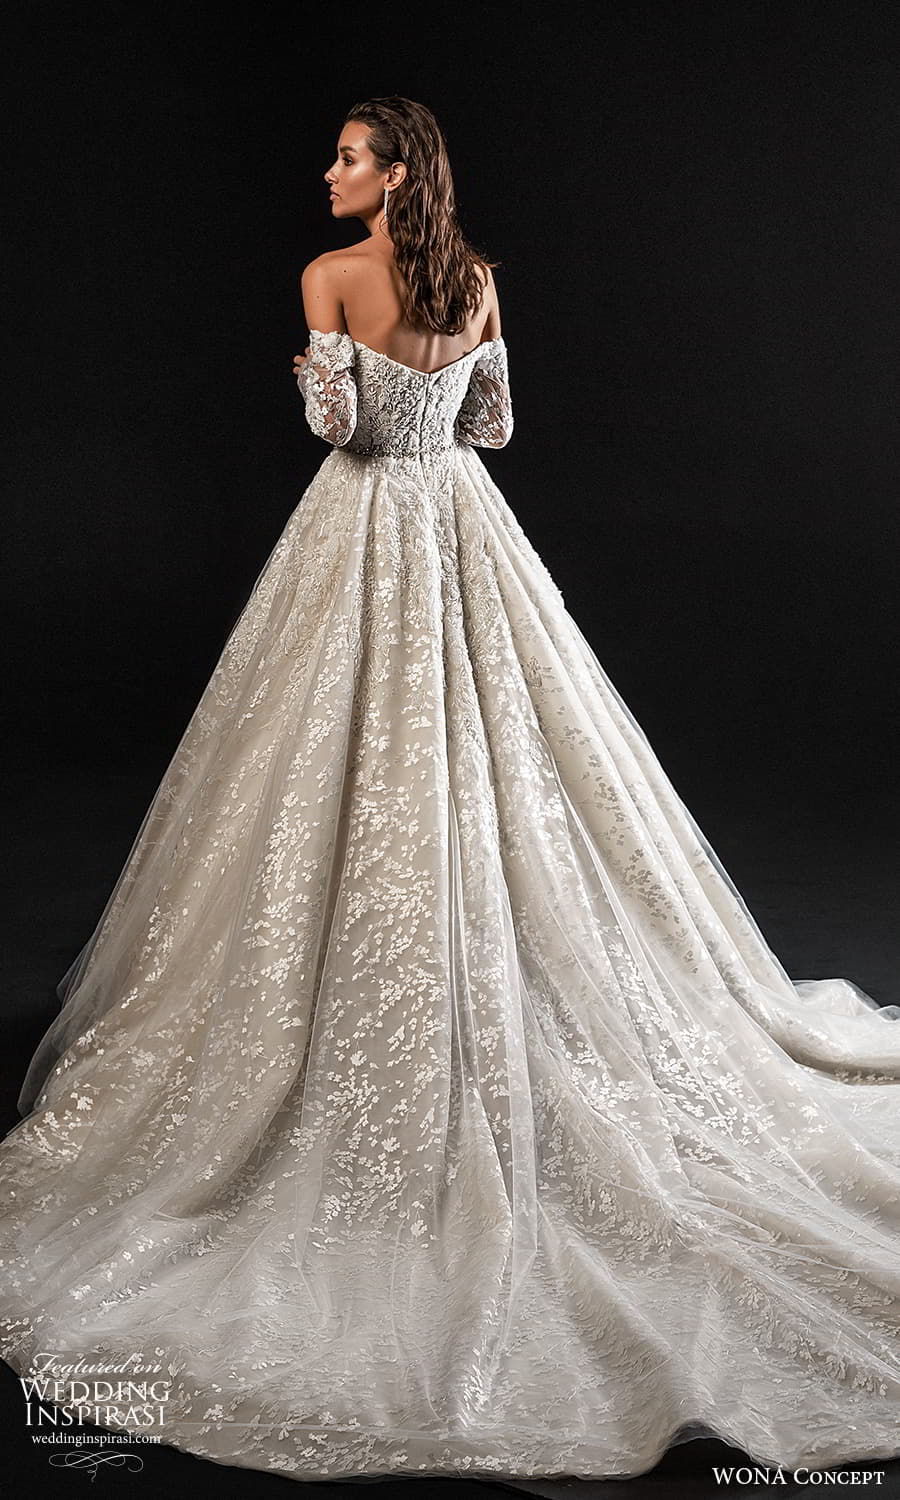 wona concept 2022 bridal long detached sleeves straight across neckline fully embellished lace ball gown wedding dress chapel train (23) bv